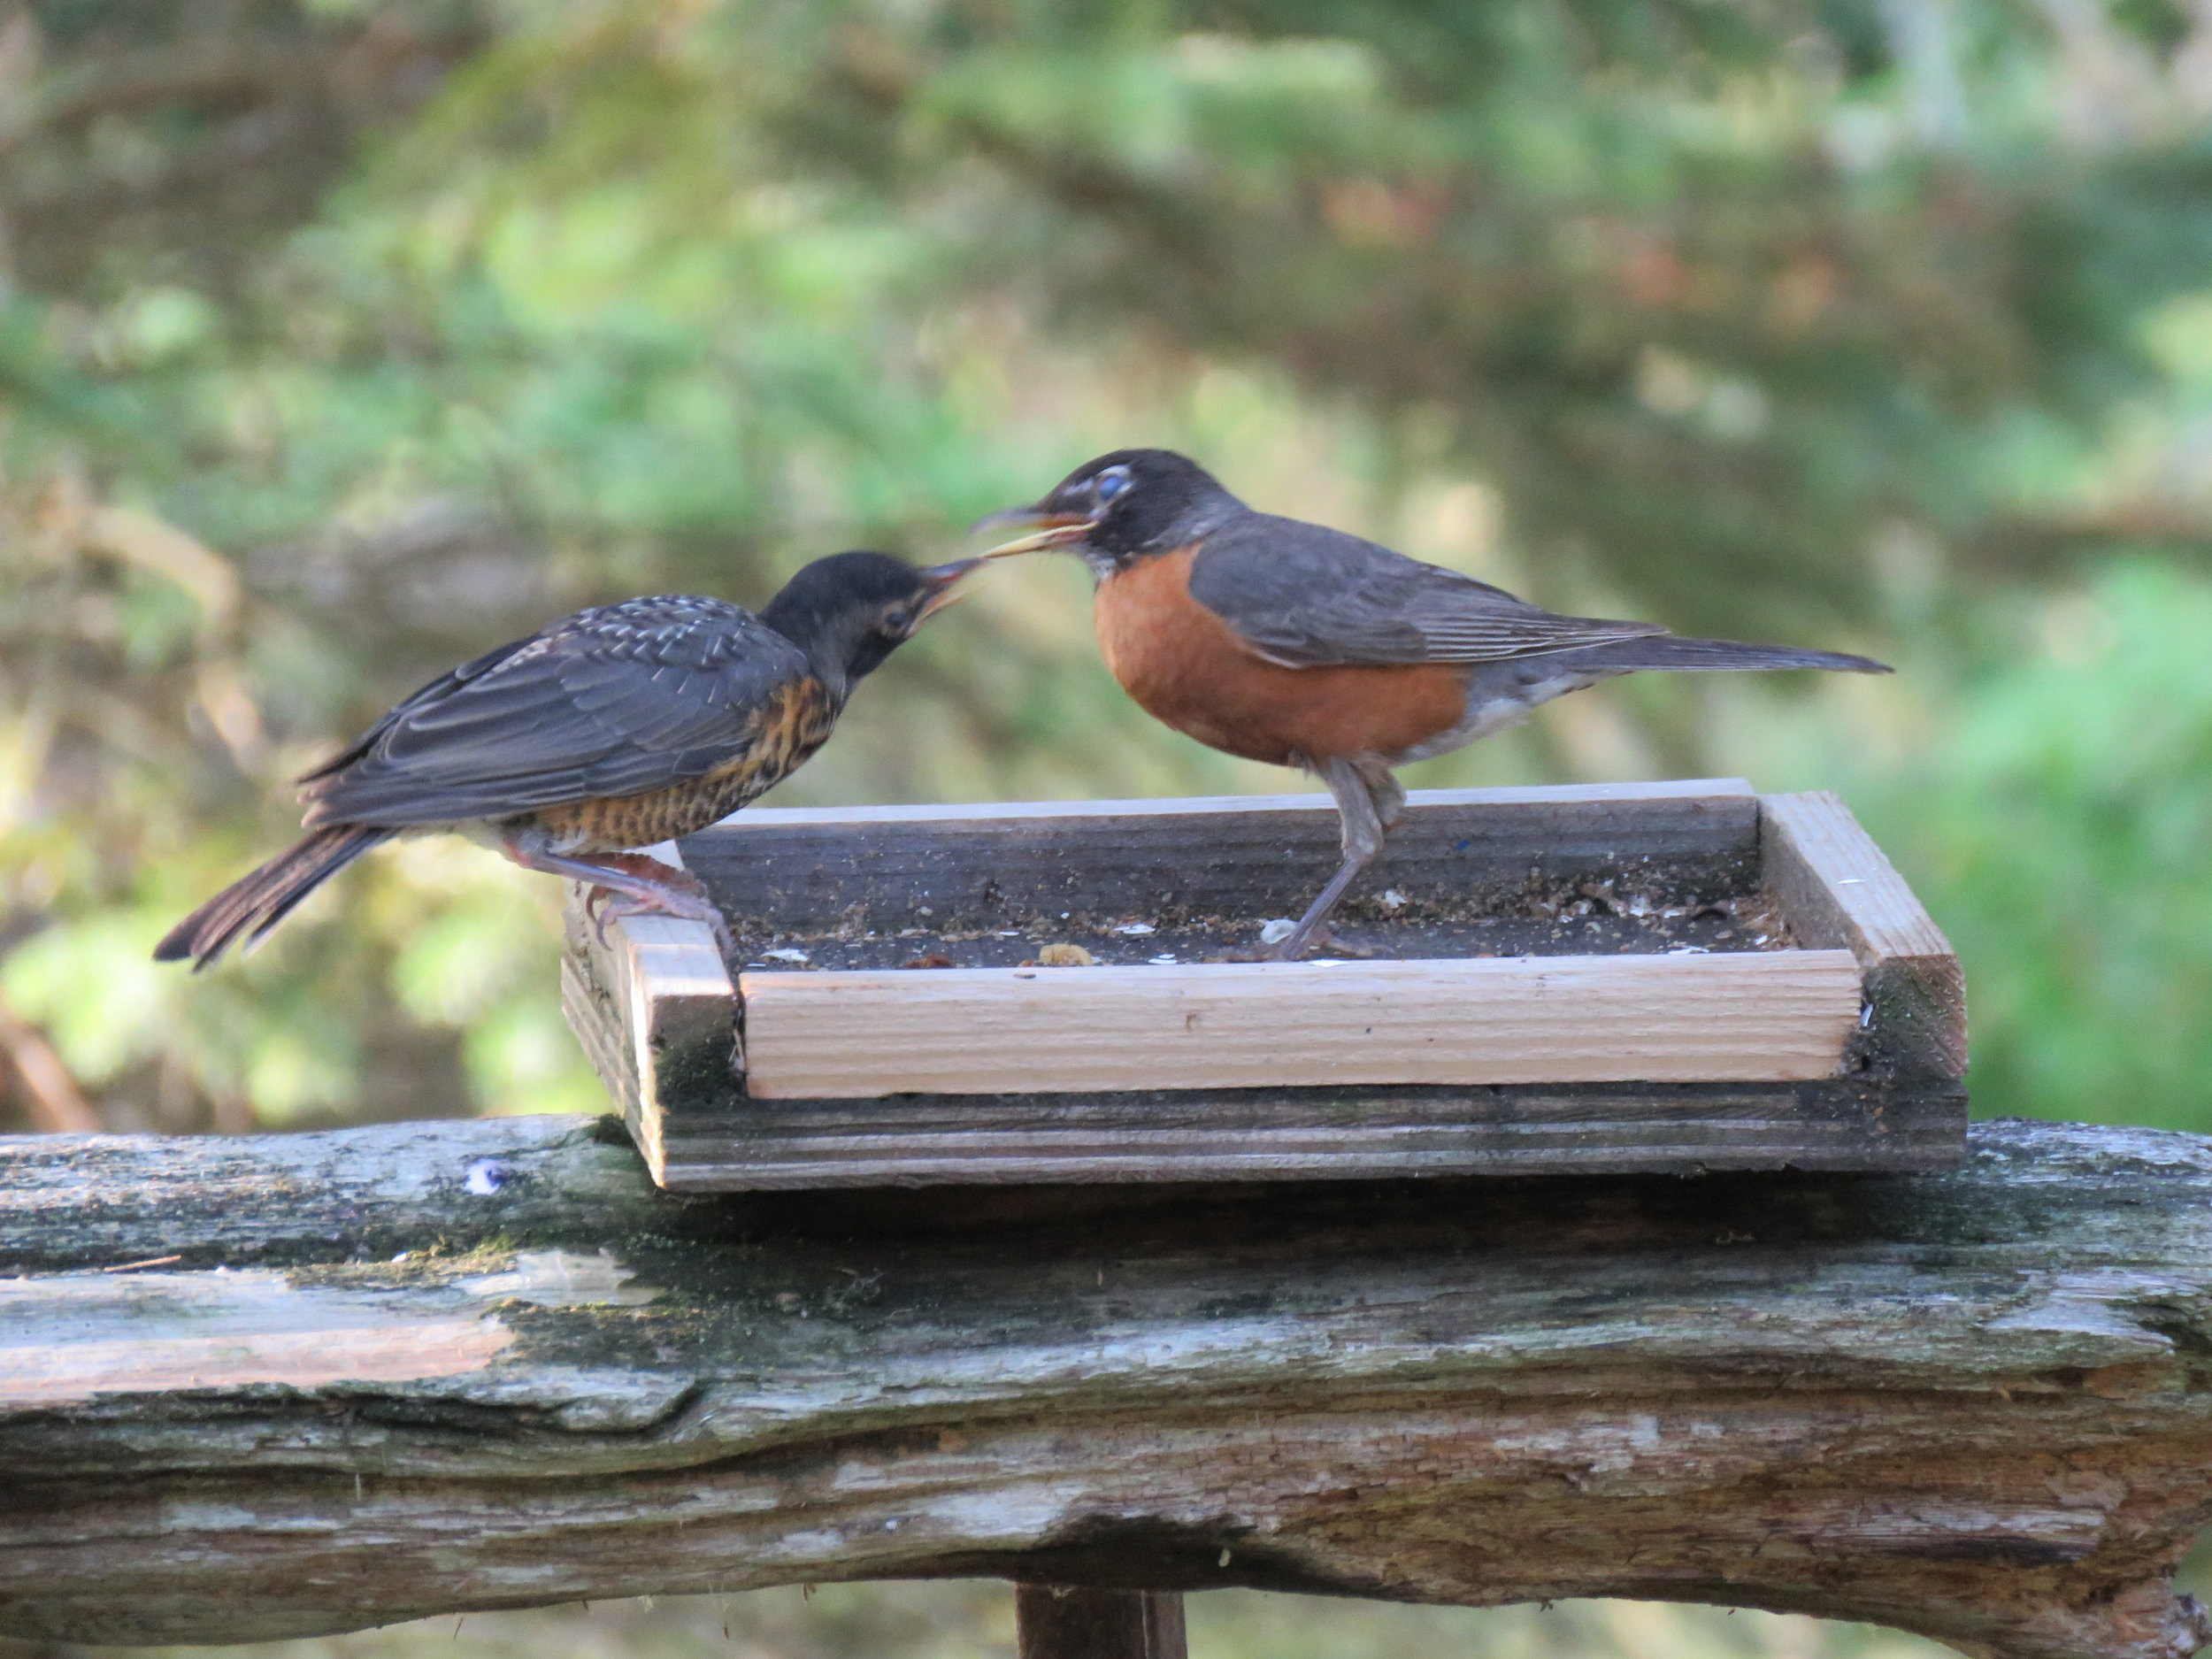 American Robins captured in our garden July 15 2018